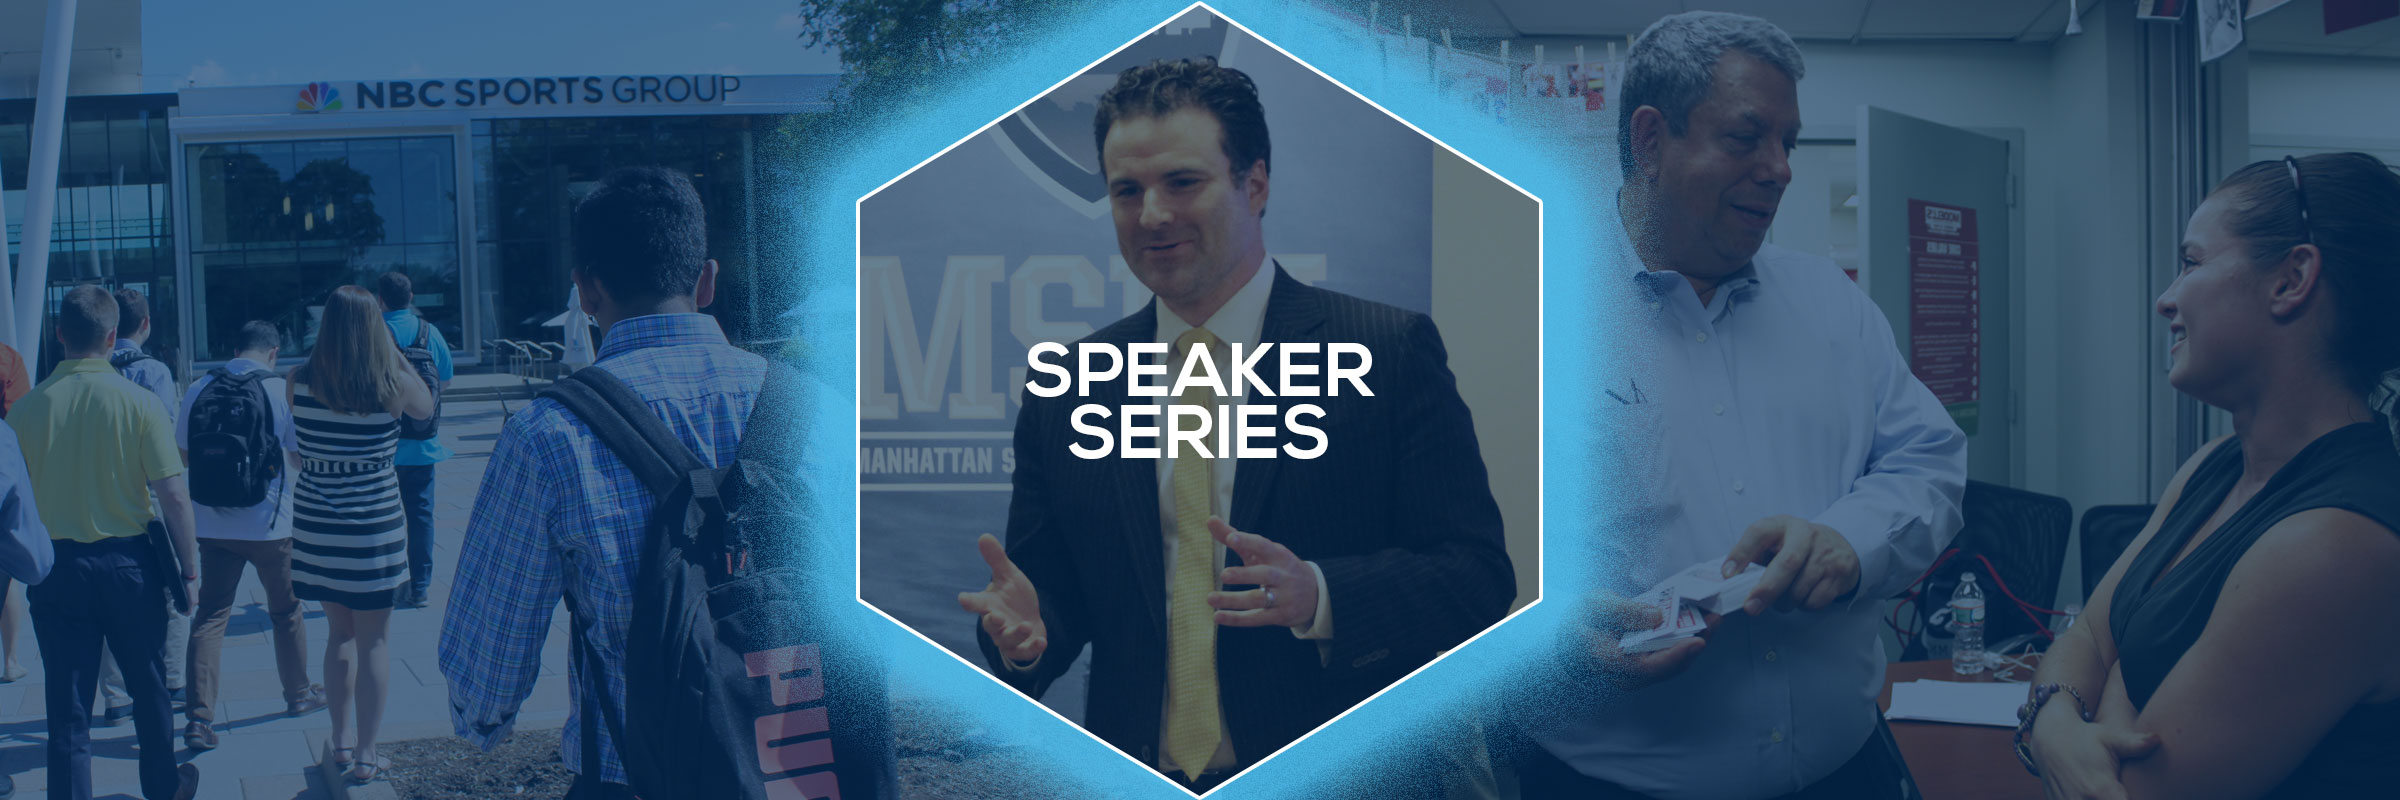 Speaker Series Msba Manhattan Sports Business Academy